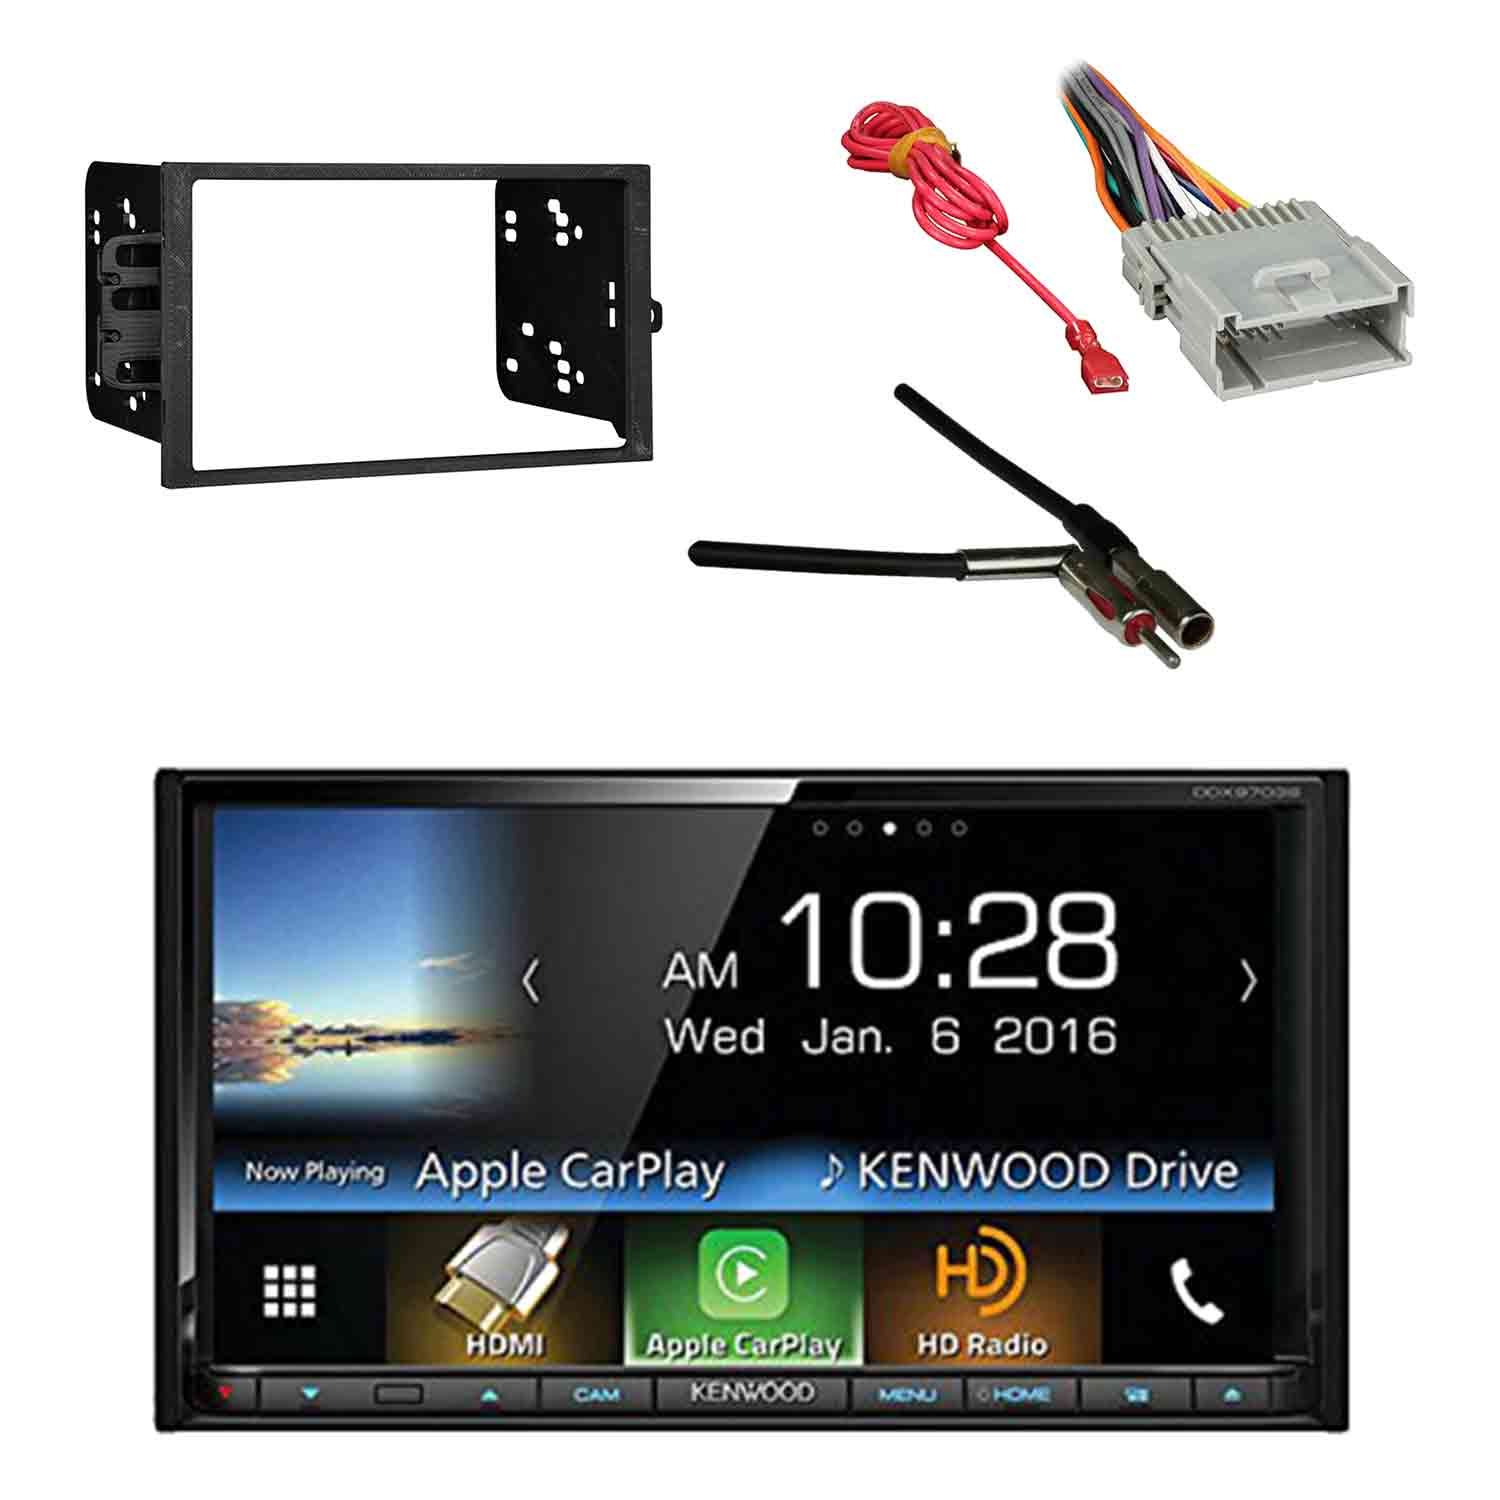 hight resolution of  kenwood ddx9703s 2 din dvd cd am fm car stereo receiver with metra kenwood sub amp